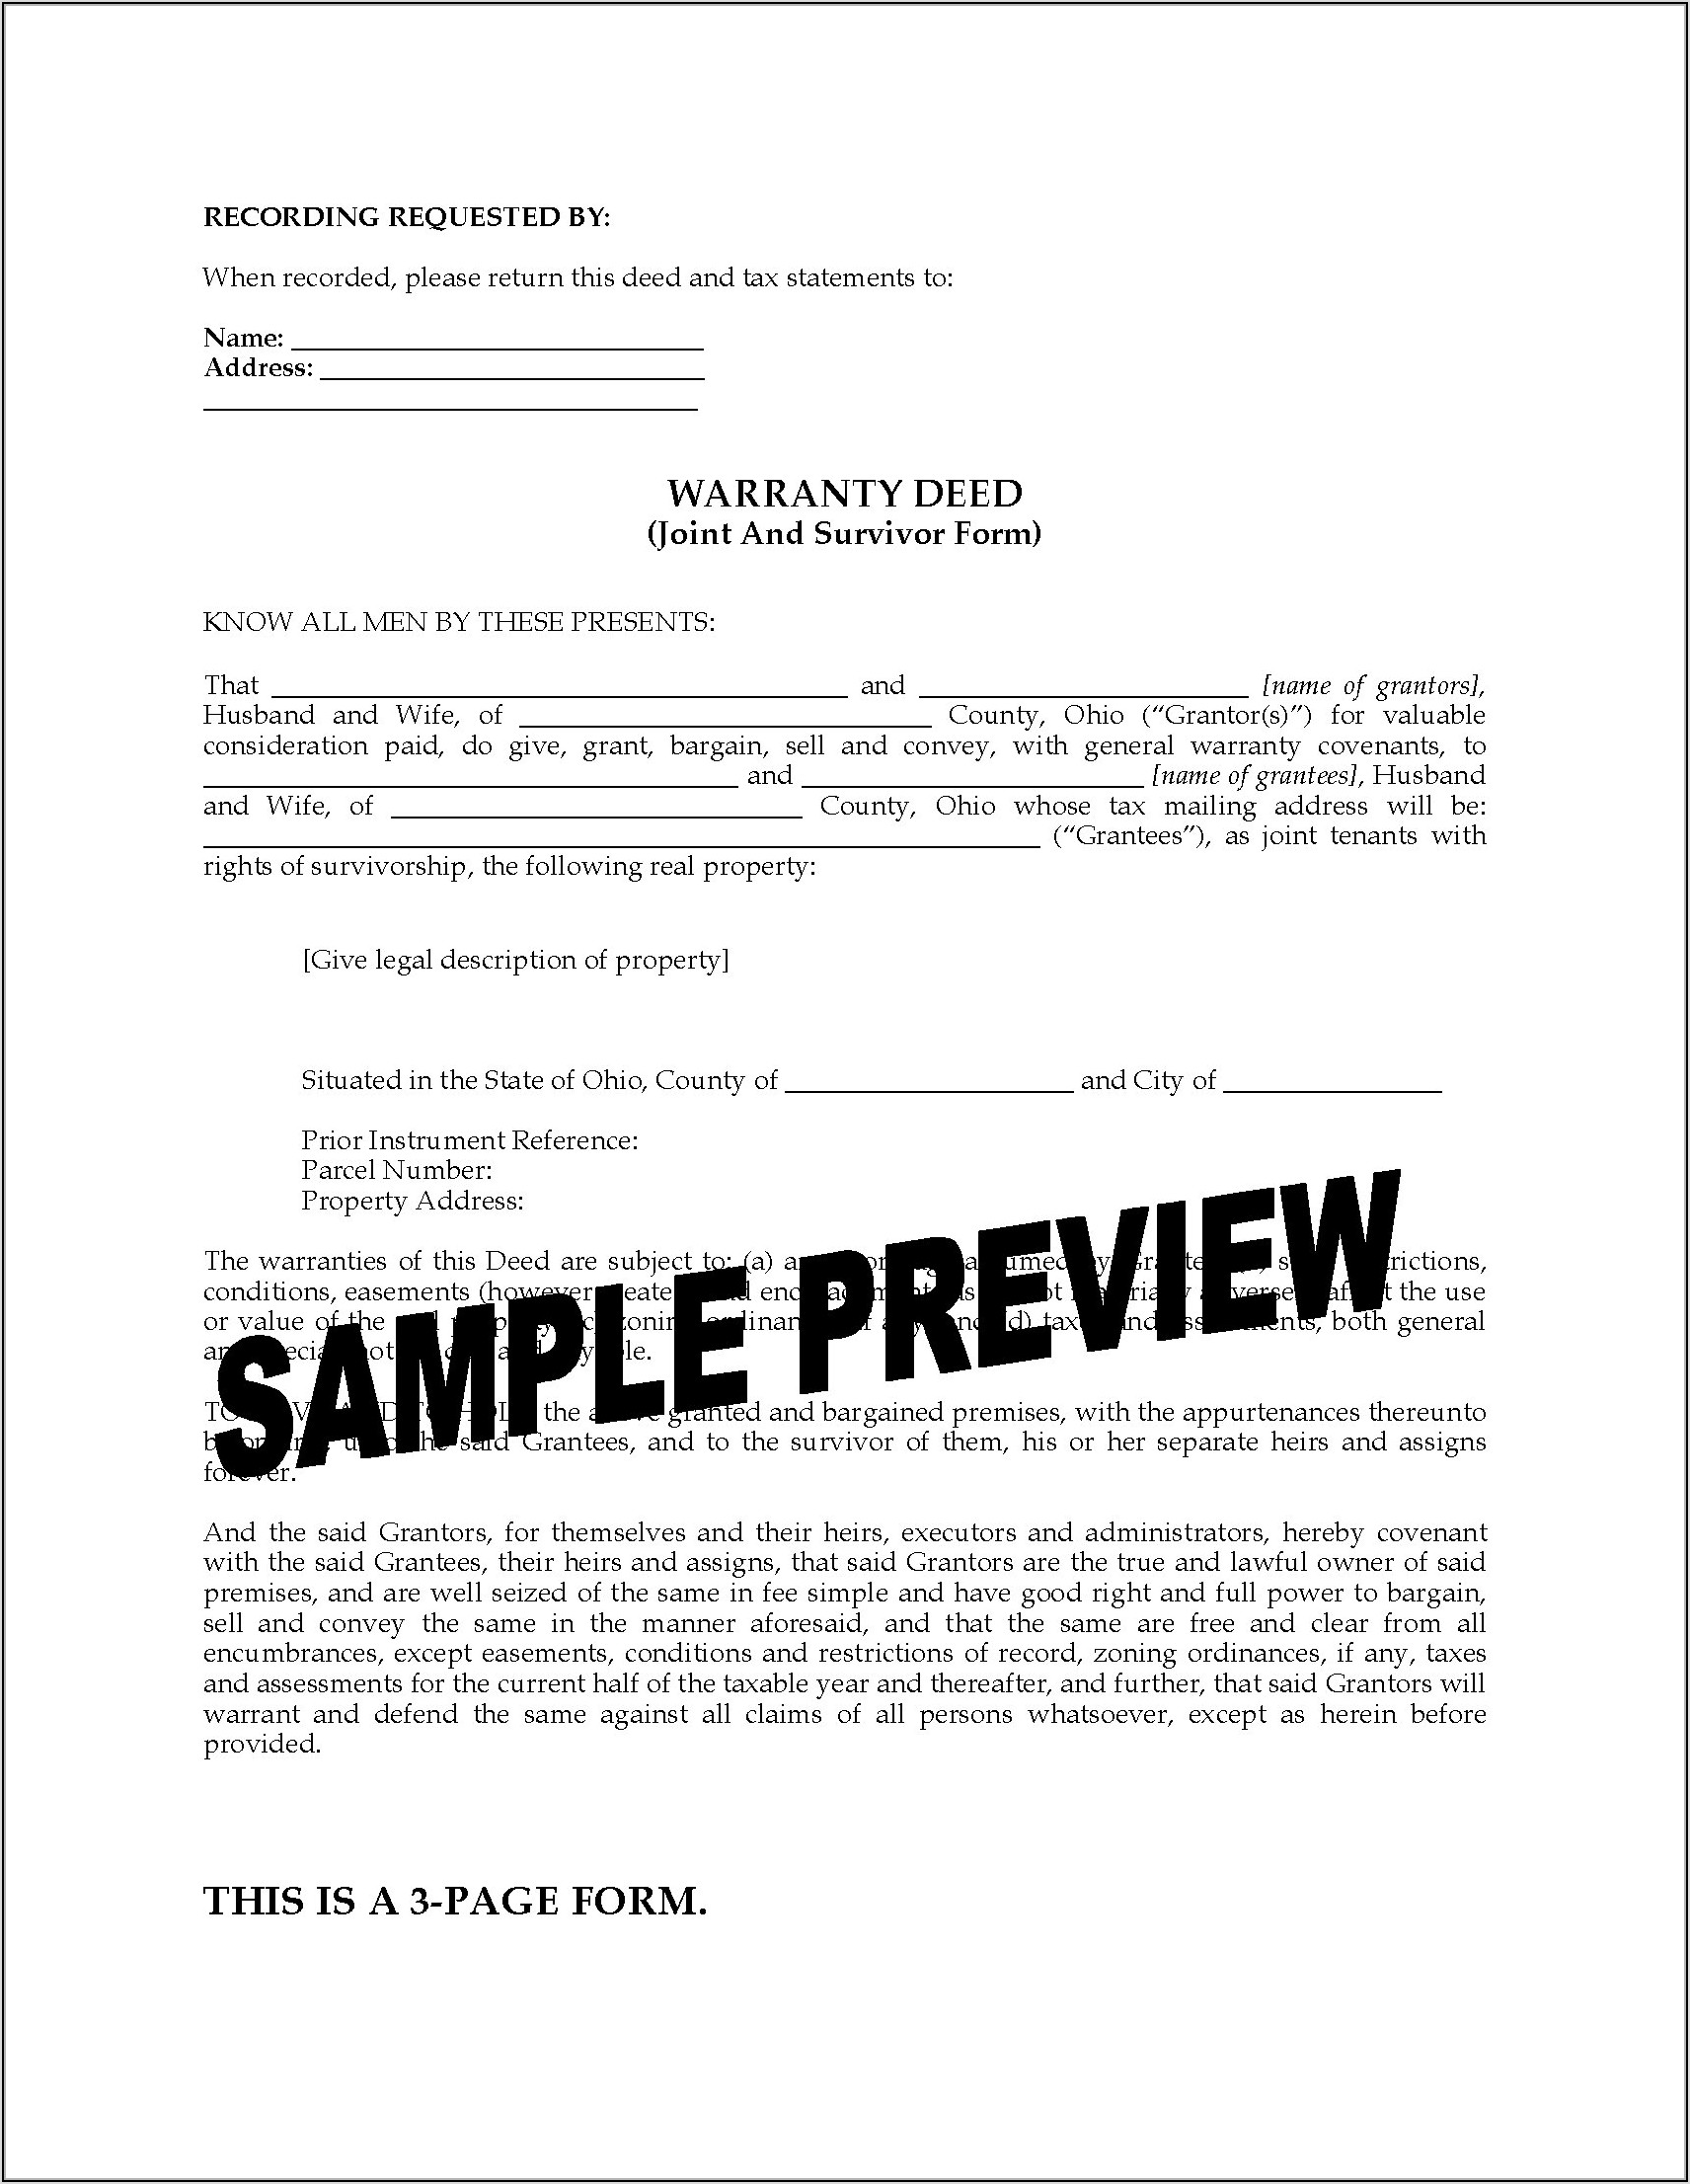 Affidavit Of Survivorship Form Ohio